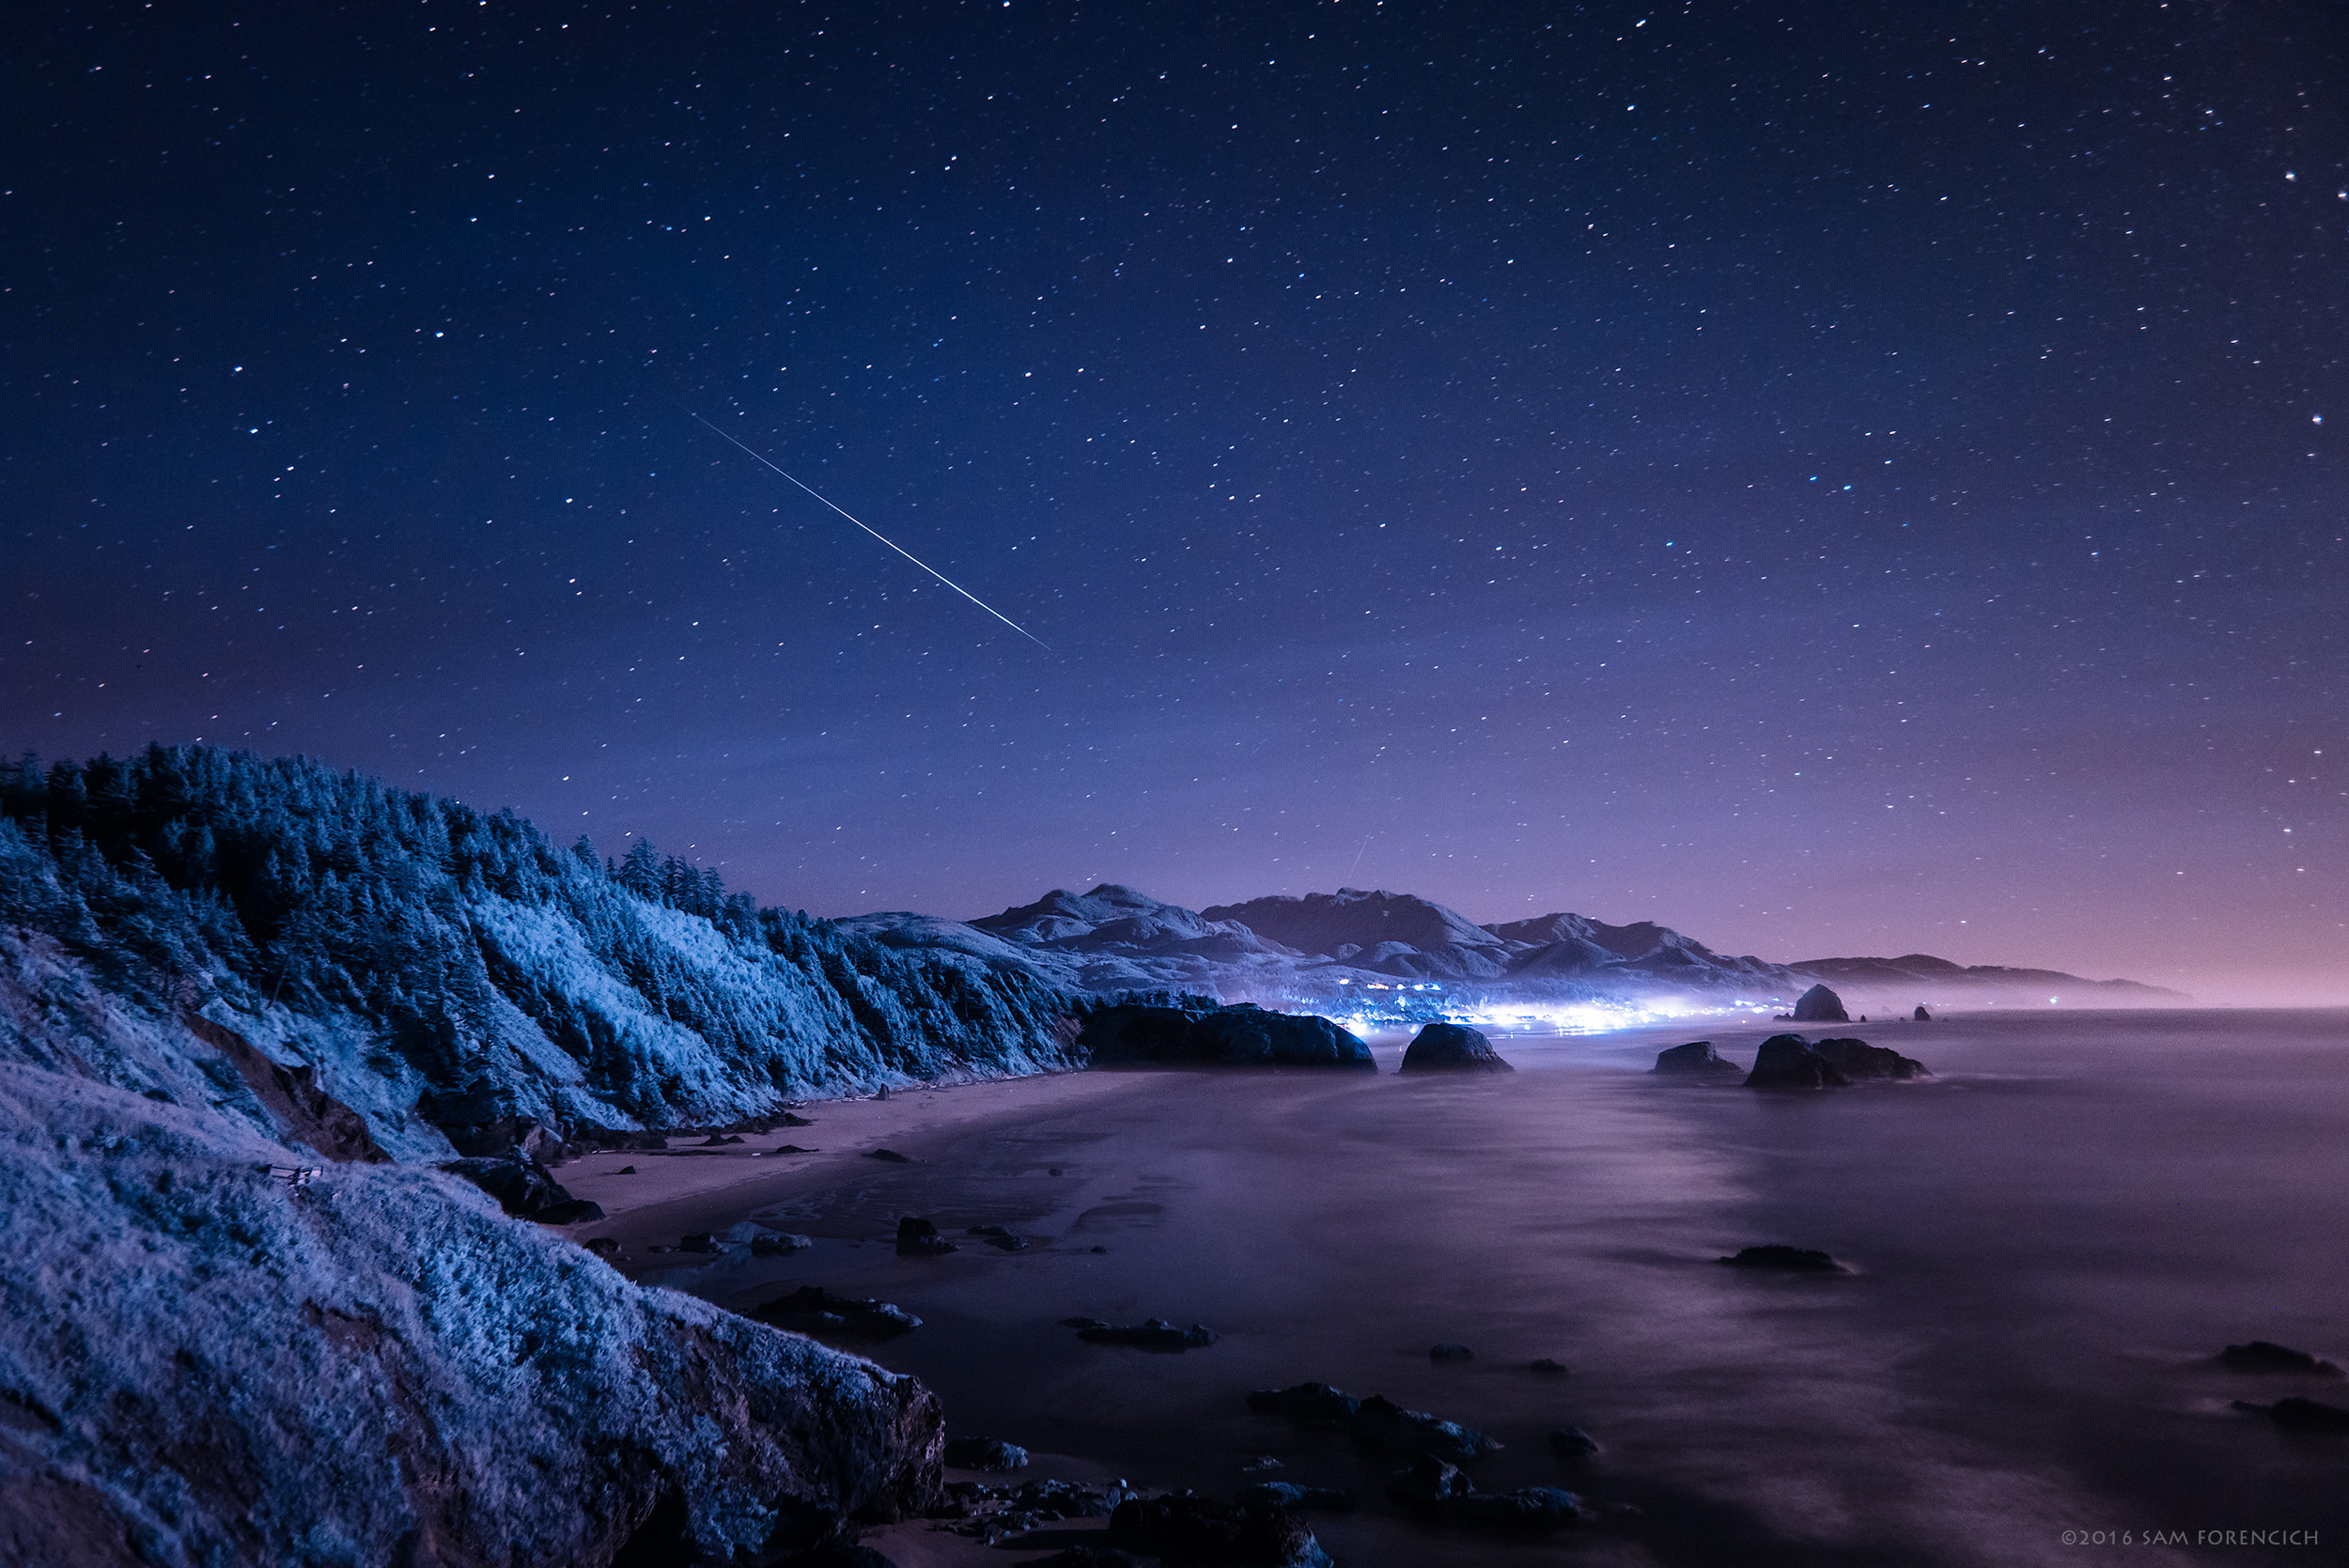 A meteor streaks through the atmosphere over Cannon Beach, Oregon during the peak of the Perseid meteor shower of 2016. Still image from Invisible Oregon time-lapse sequence. IR converted Nikon D750. © 2016 Sam Forencich